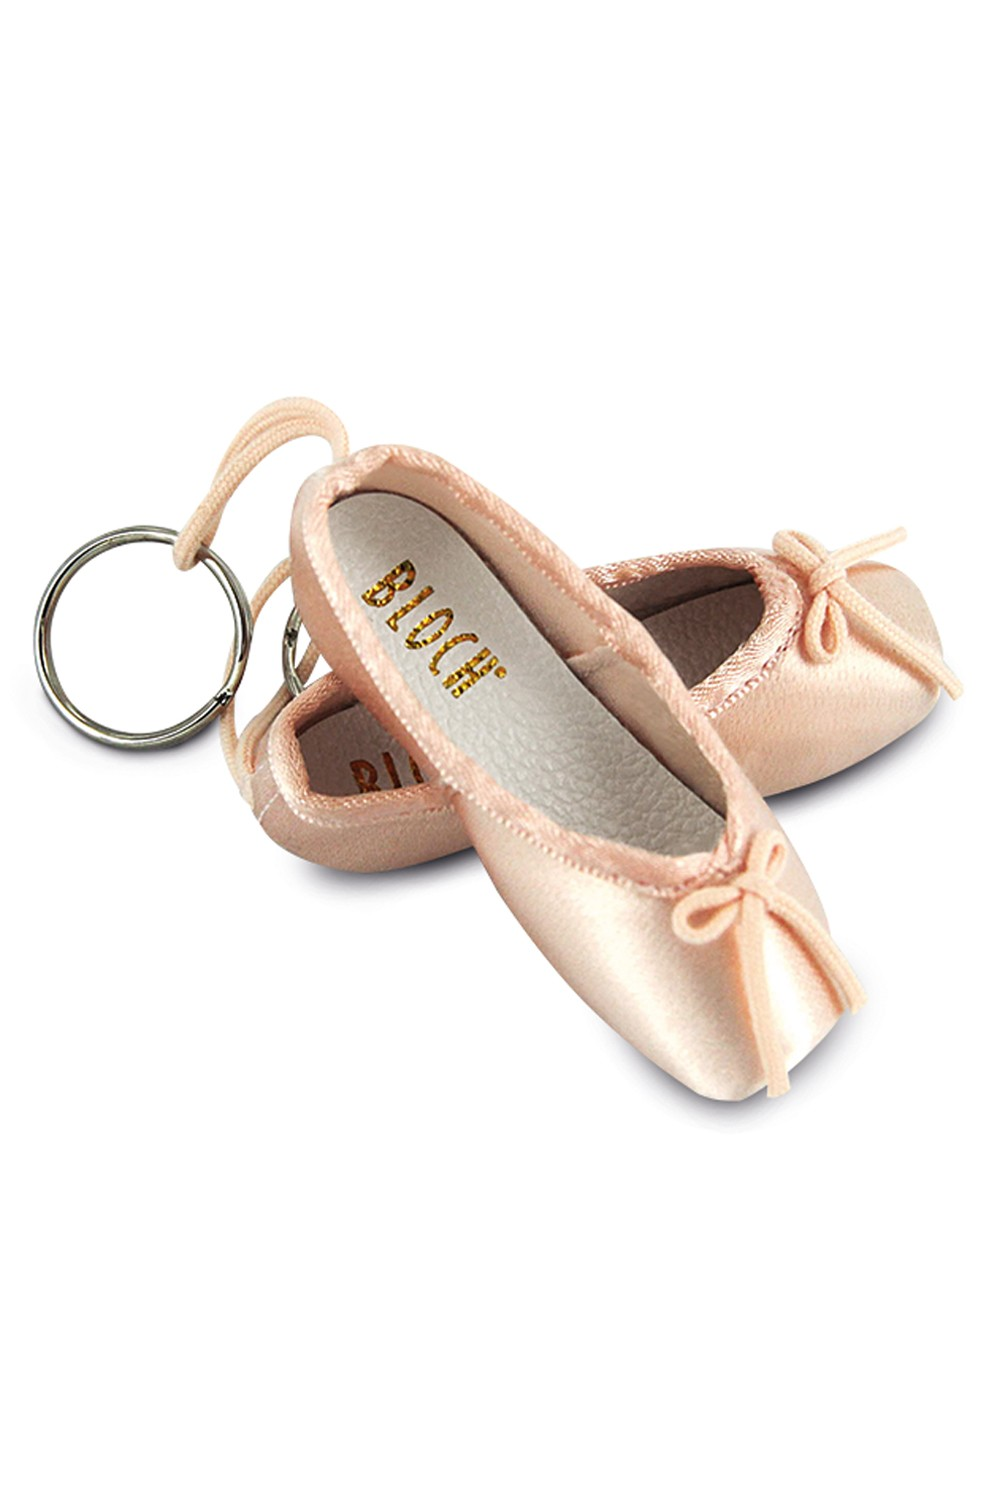 Pointe Shoe Key Ring Dance Shoes Accessories